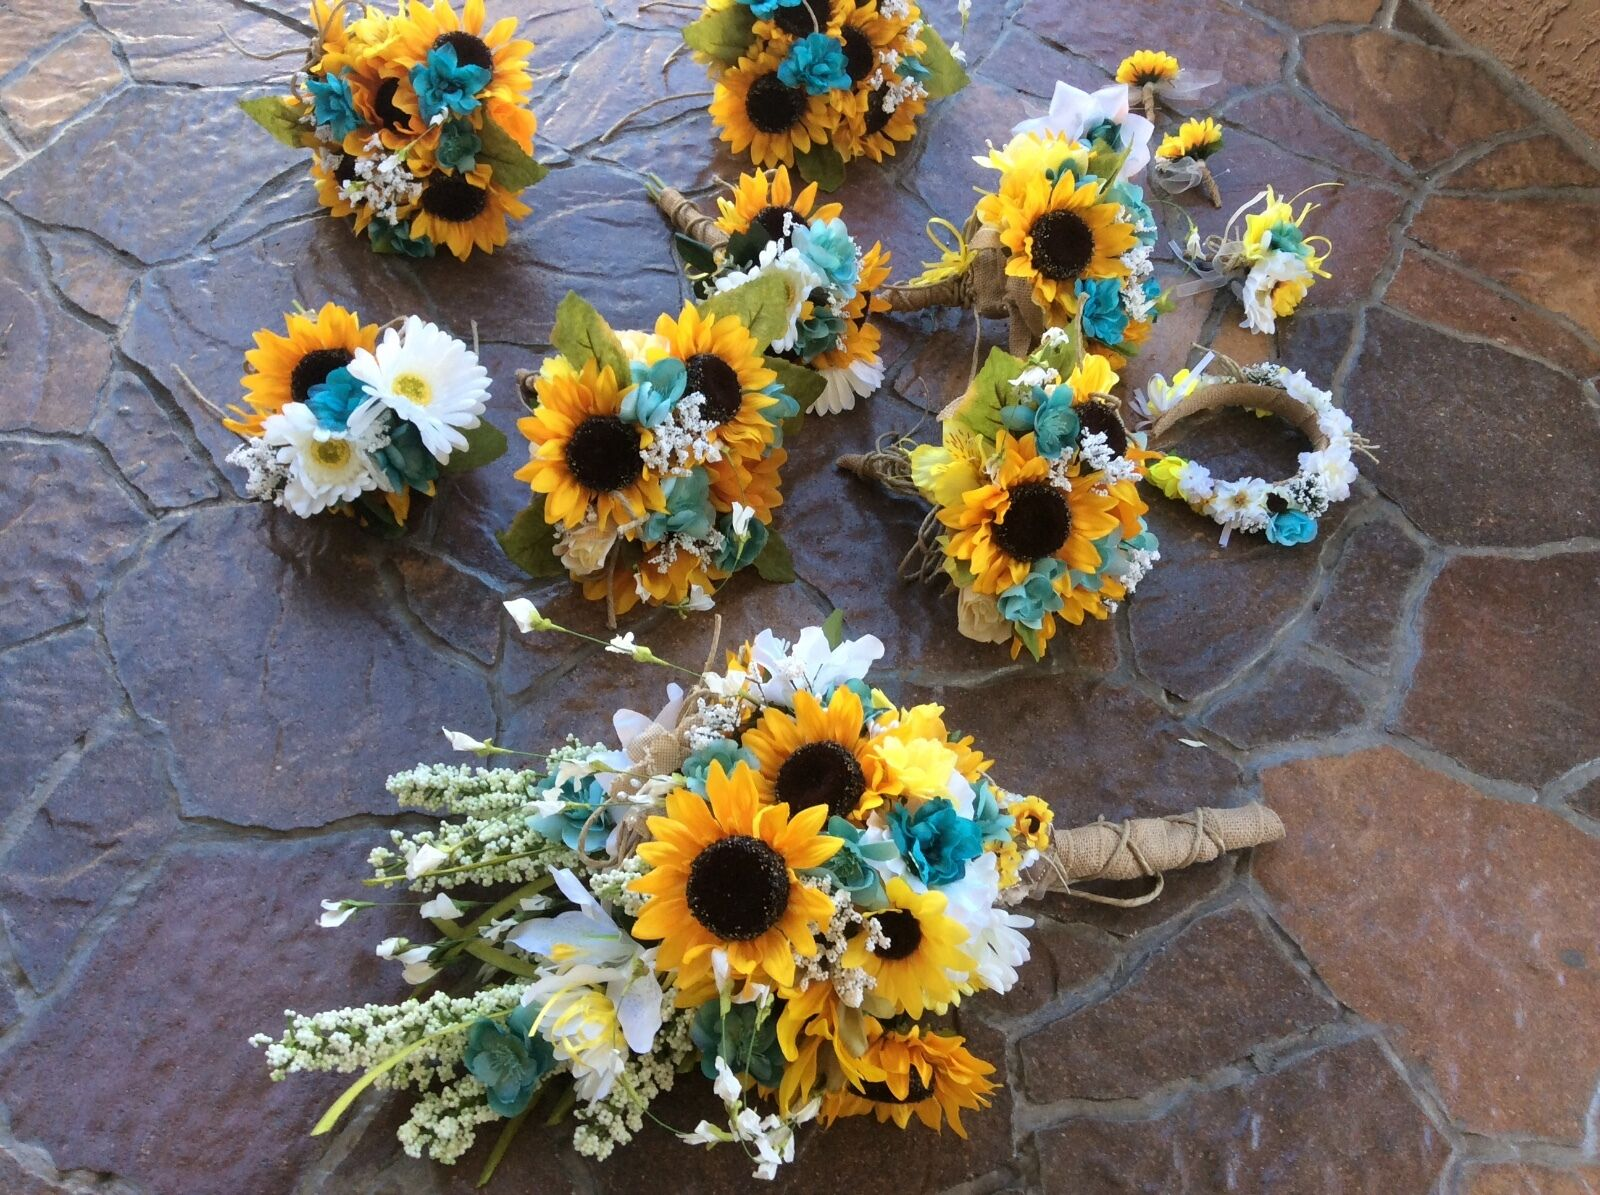 Wedding flowers bridal bouquets decorations sunflowers oasis teal turquoise 26pc